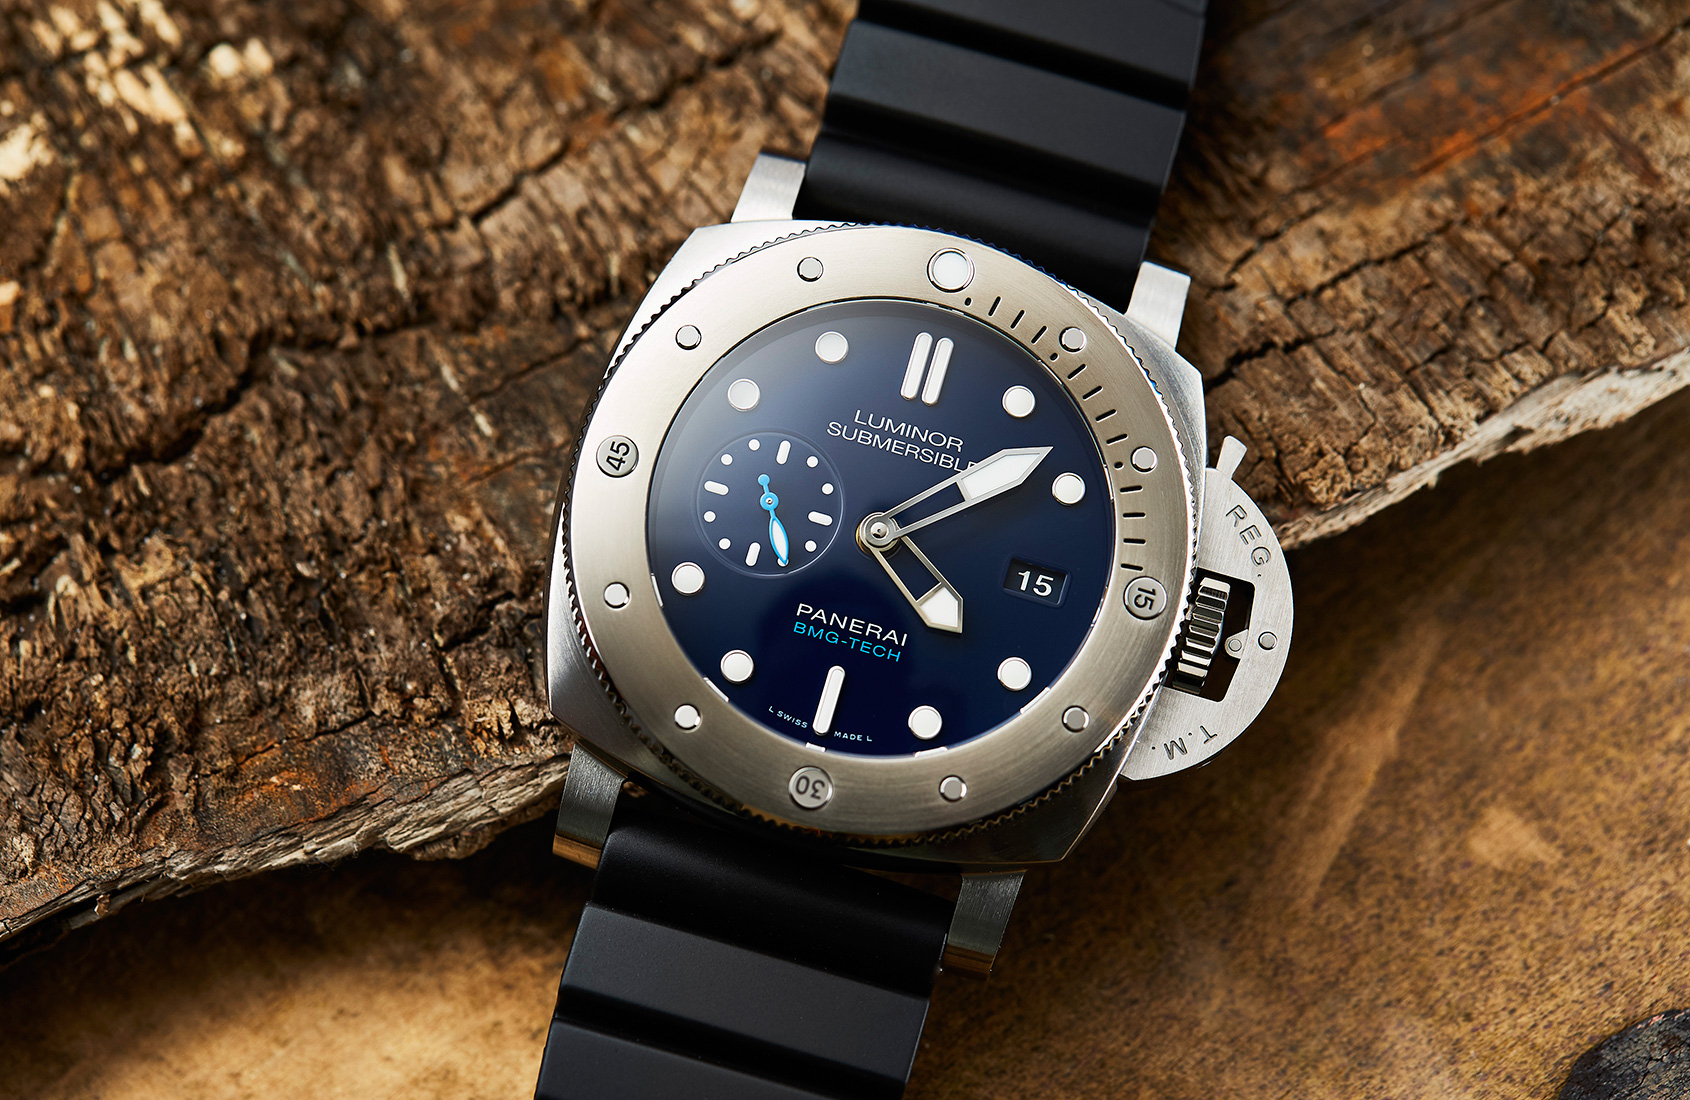 Are you more of a Panerai Radiomir or Luminor person? You should know after watching this video.